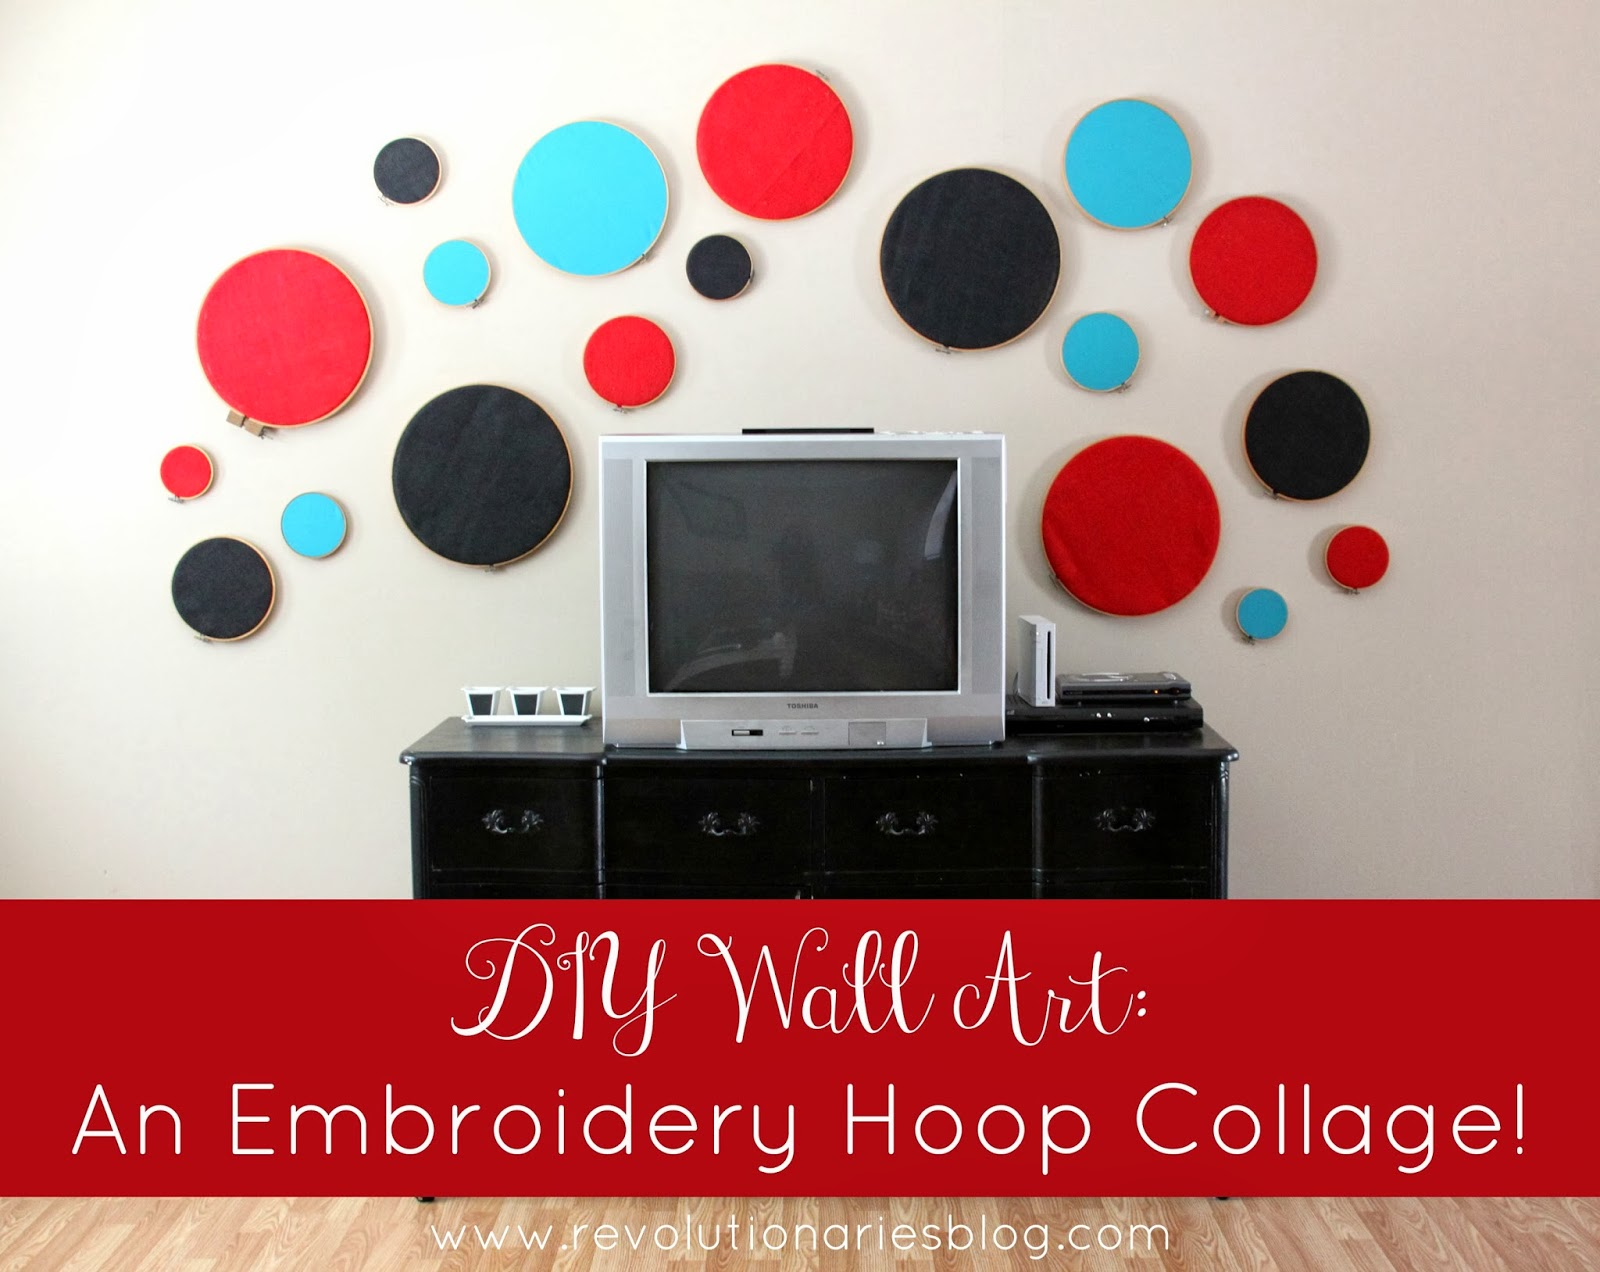 DIY Wall Art: An Embroidery Hoop Collage